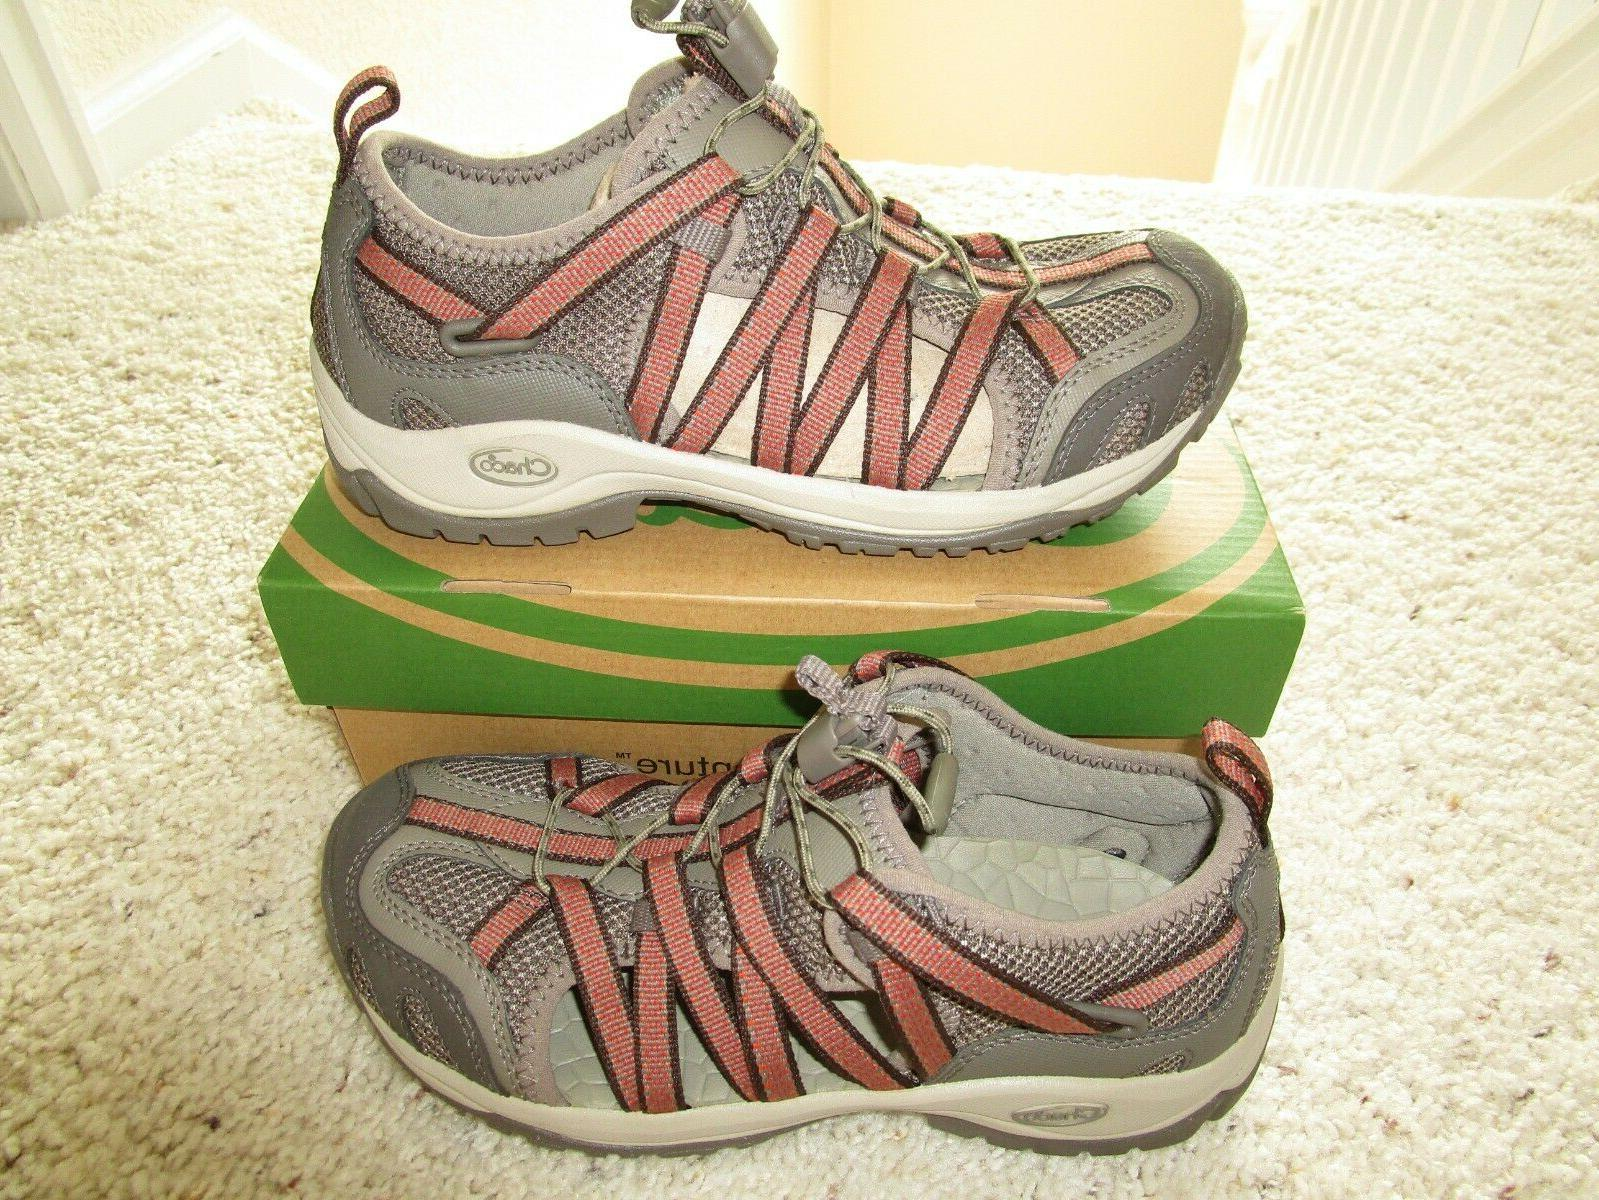 CHACO NEW OUTCROSS LACE HIKING SHOES